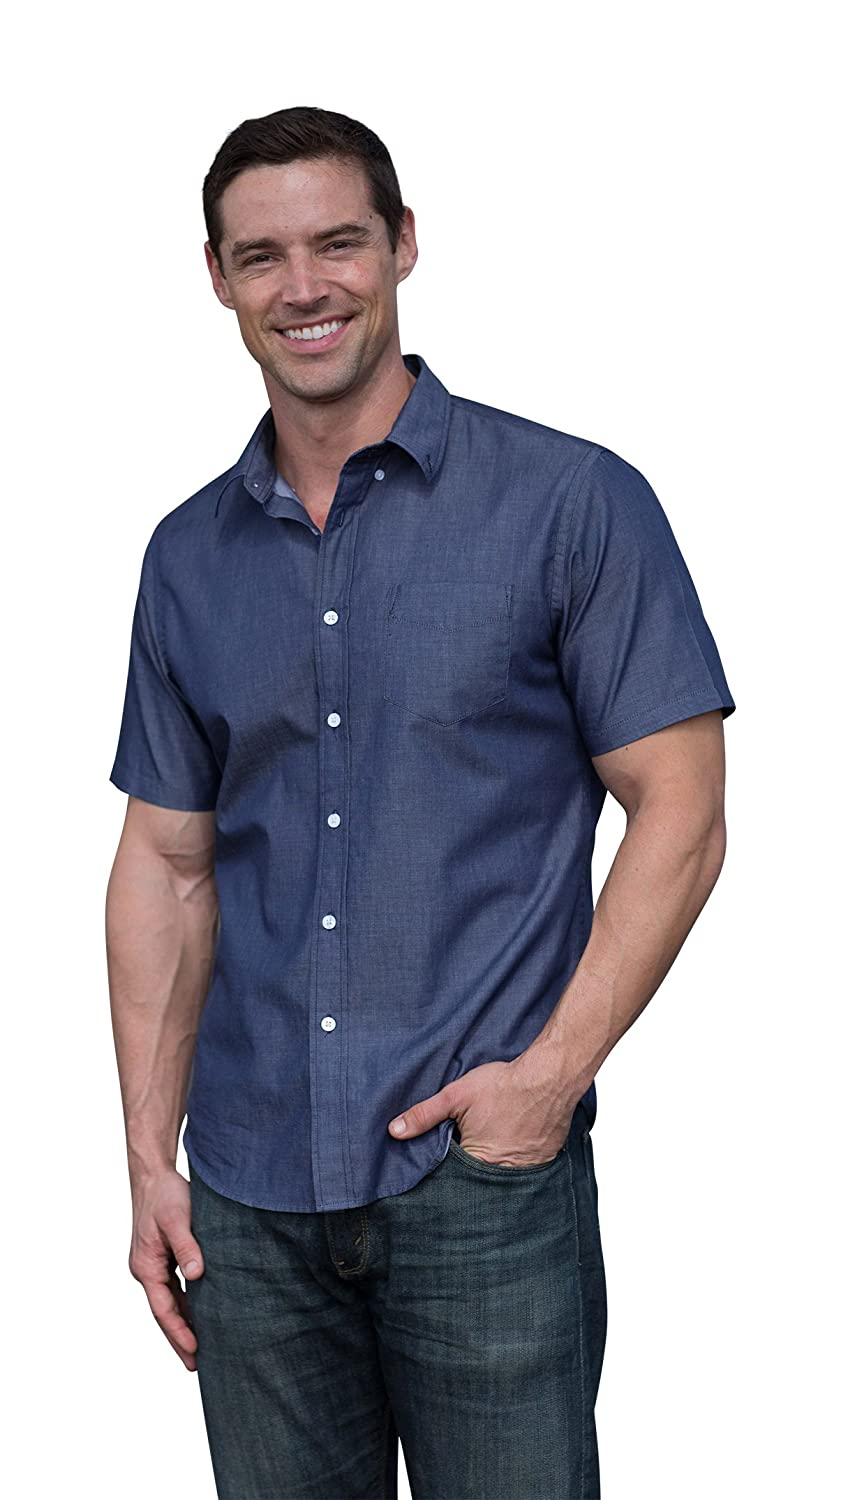 03e07751862 DESIGNER QUALITY - LOOKS and FEELS like a designer quality button-down.  WATERPROOF - The Best Shirt Ever s hydrophobic fabric allows you to stay  dry on a ...